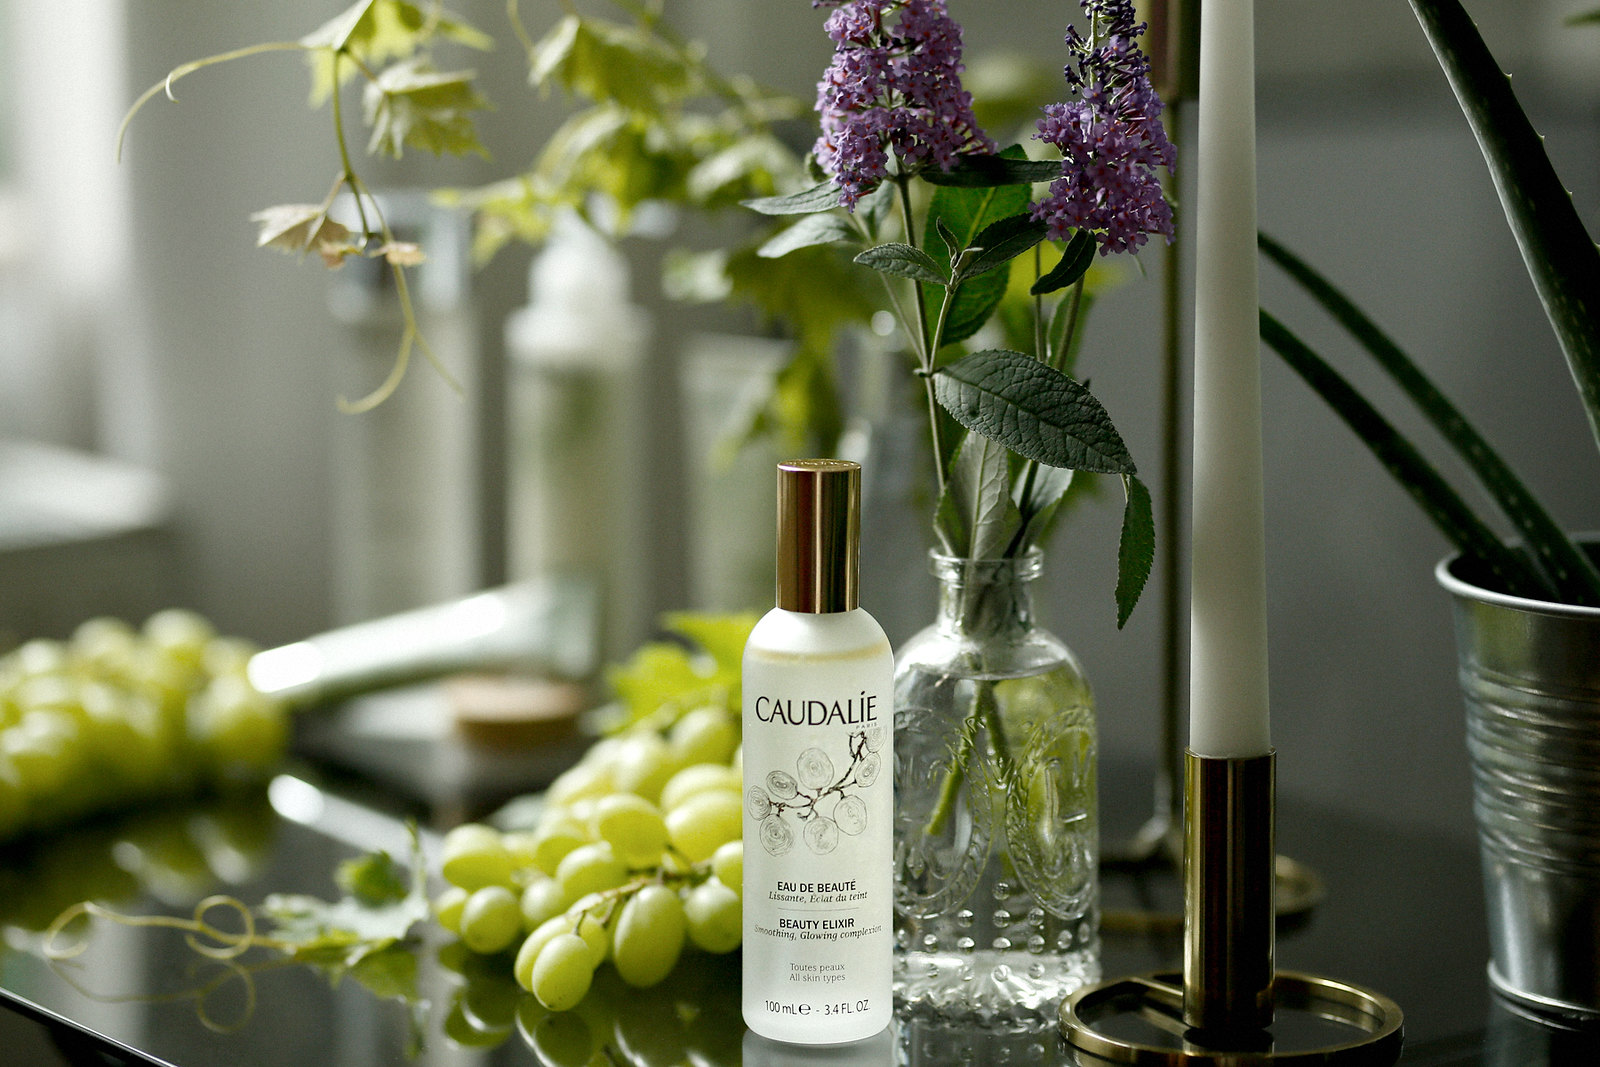 caudalie eau de beauté beauty elixir french beauty wine grapes weintrauben vino vines nature cosmetics mist water spray rosie huntington campaign summer francaise beautyblogger germanblogger cats & dogs beautyblog ricarda schernus düsseldorf 1